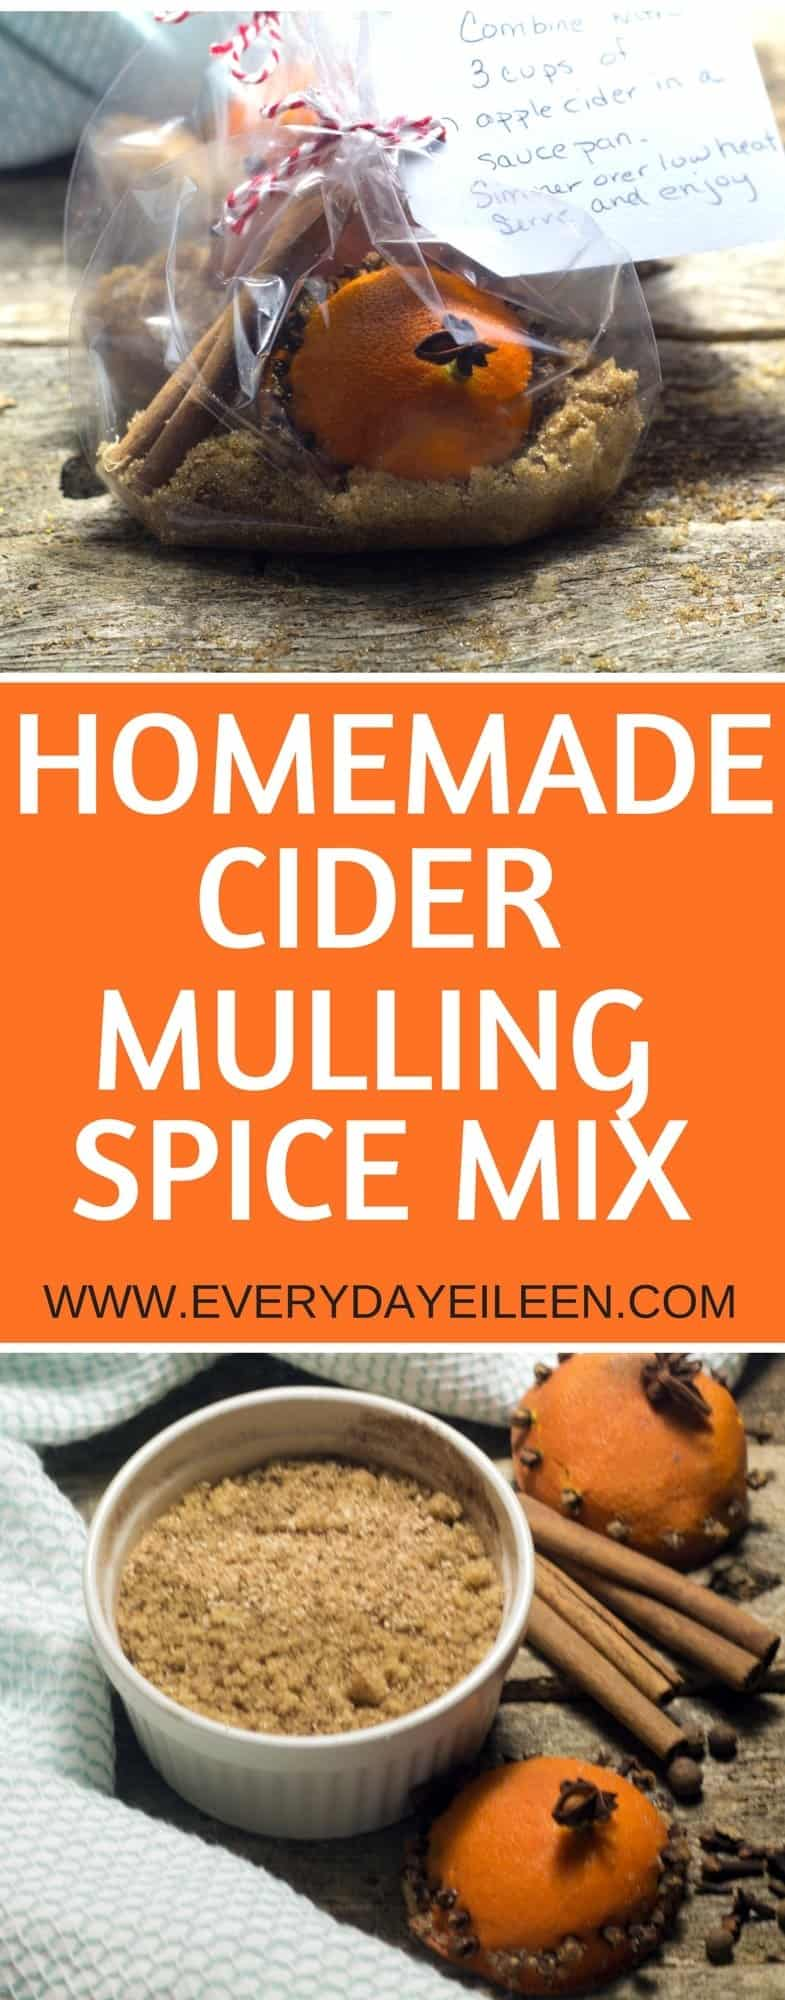 homemade cider mulling spice mix